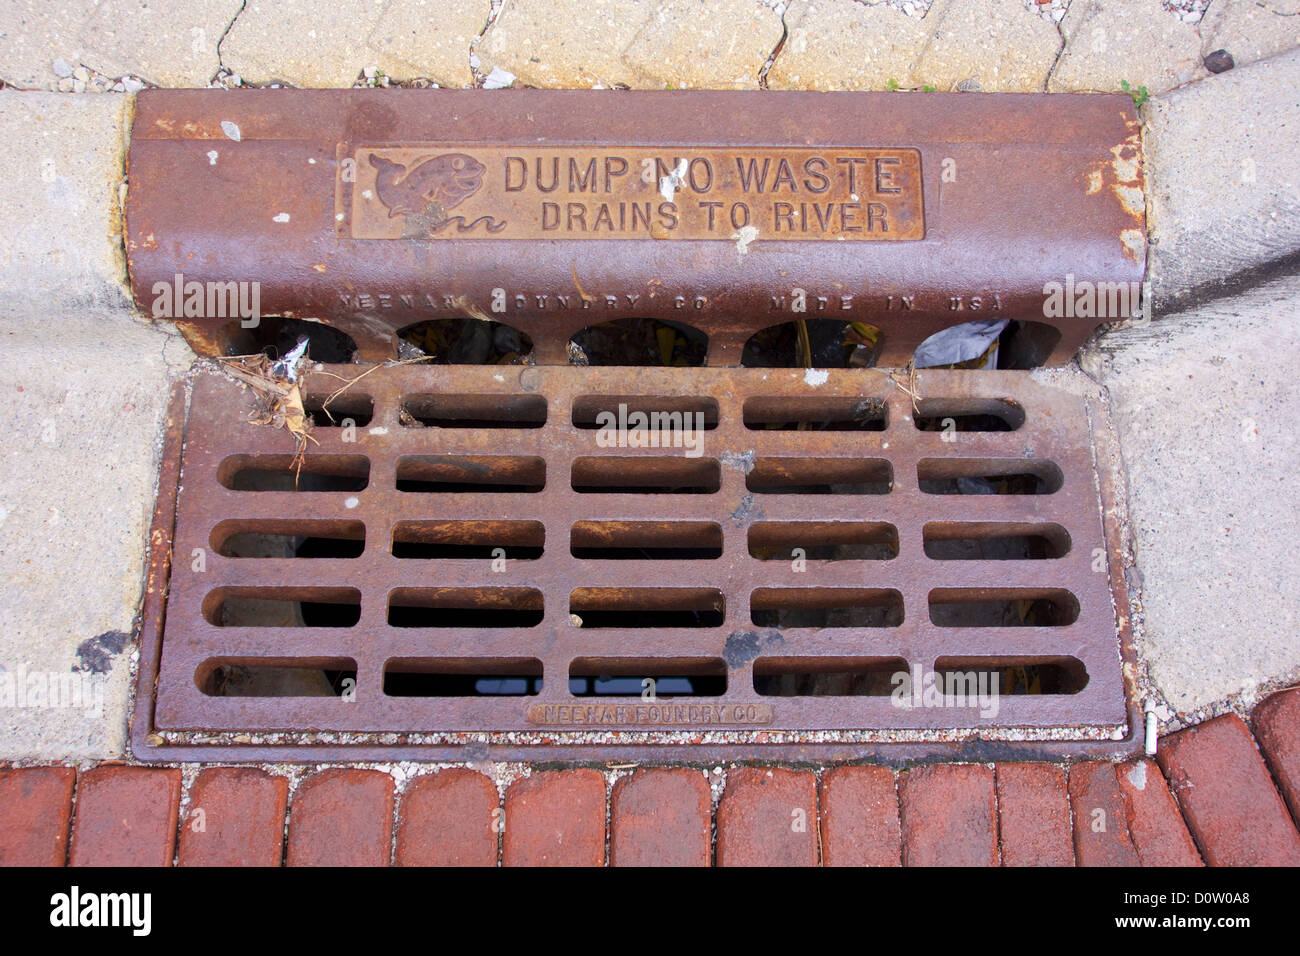 Storm drain grate with dump no waste drains to river warning. Oak Park Illinois - Stock Image